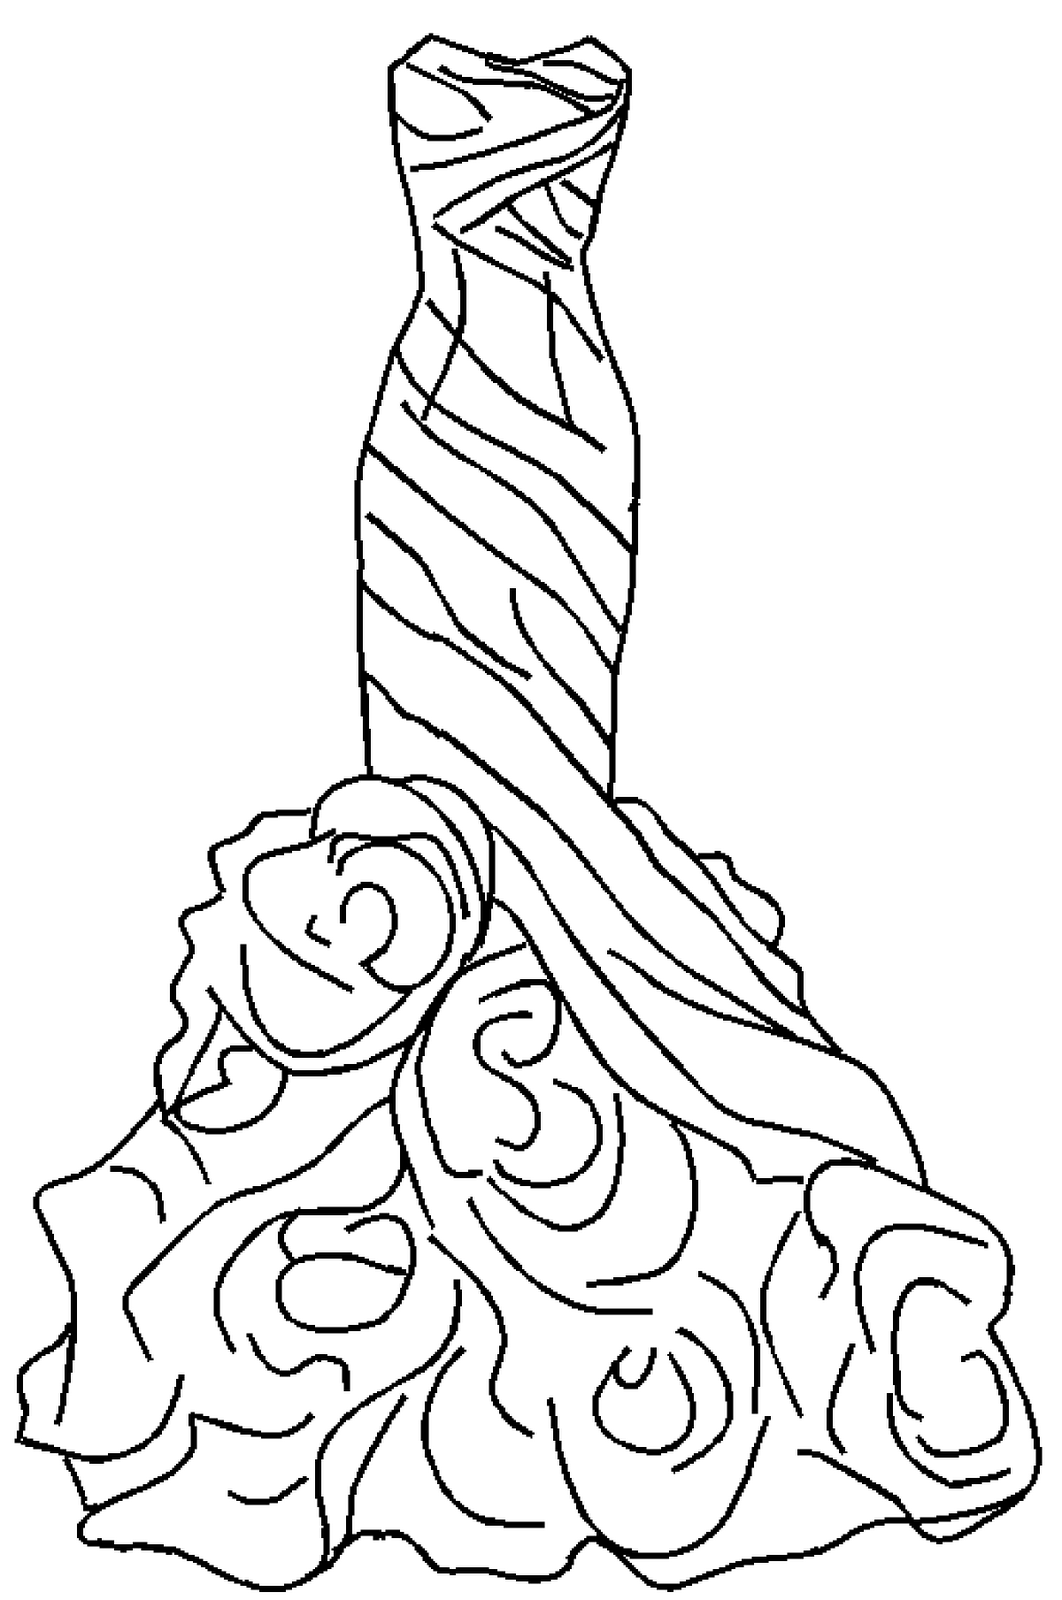 Pin By Allie Snyder On Amazing Art Coloring Pages Quilling Patterns Paper Embroidery